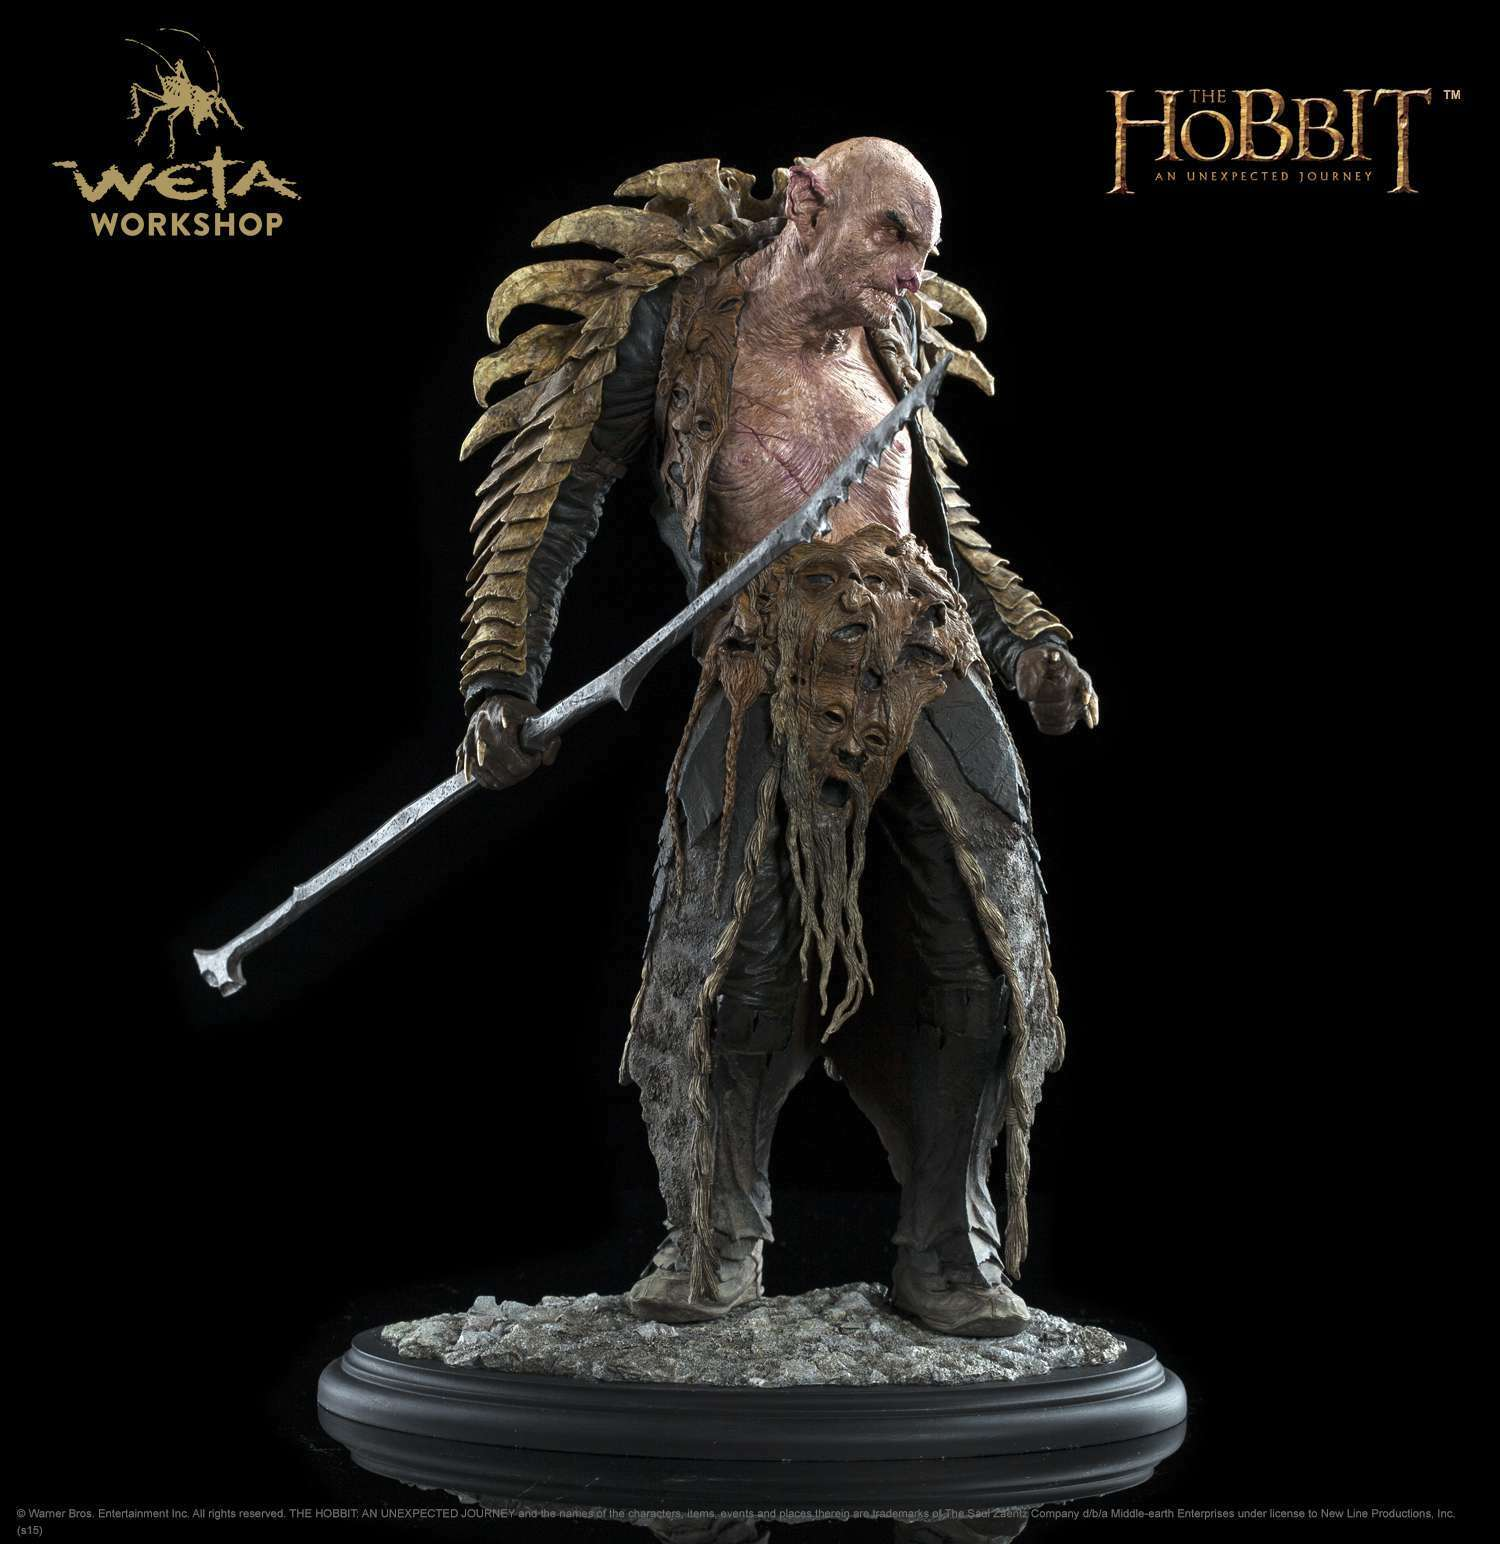 marca The HOBBIT HOBBIT HOBBIT  AN UNEXPECTED JOURNEY - YAZNEG 1 6 STATUE 12  WETA  marca famosa